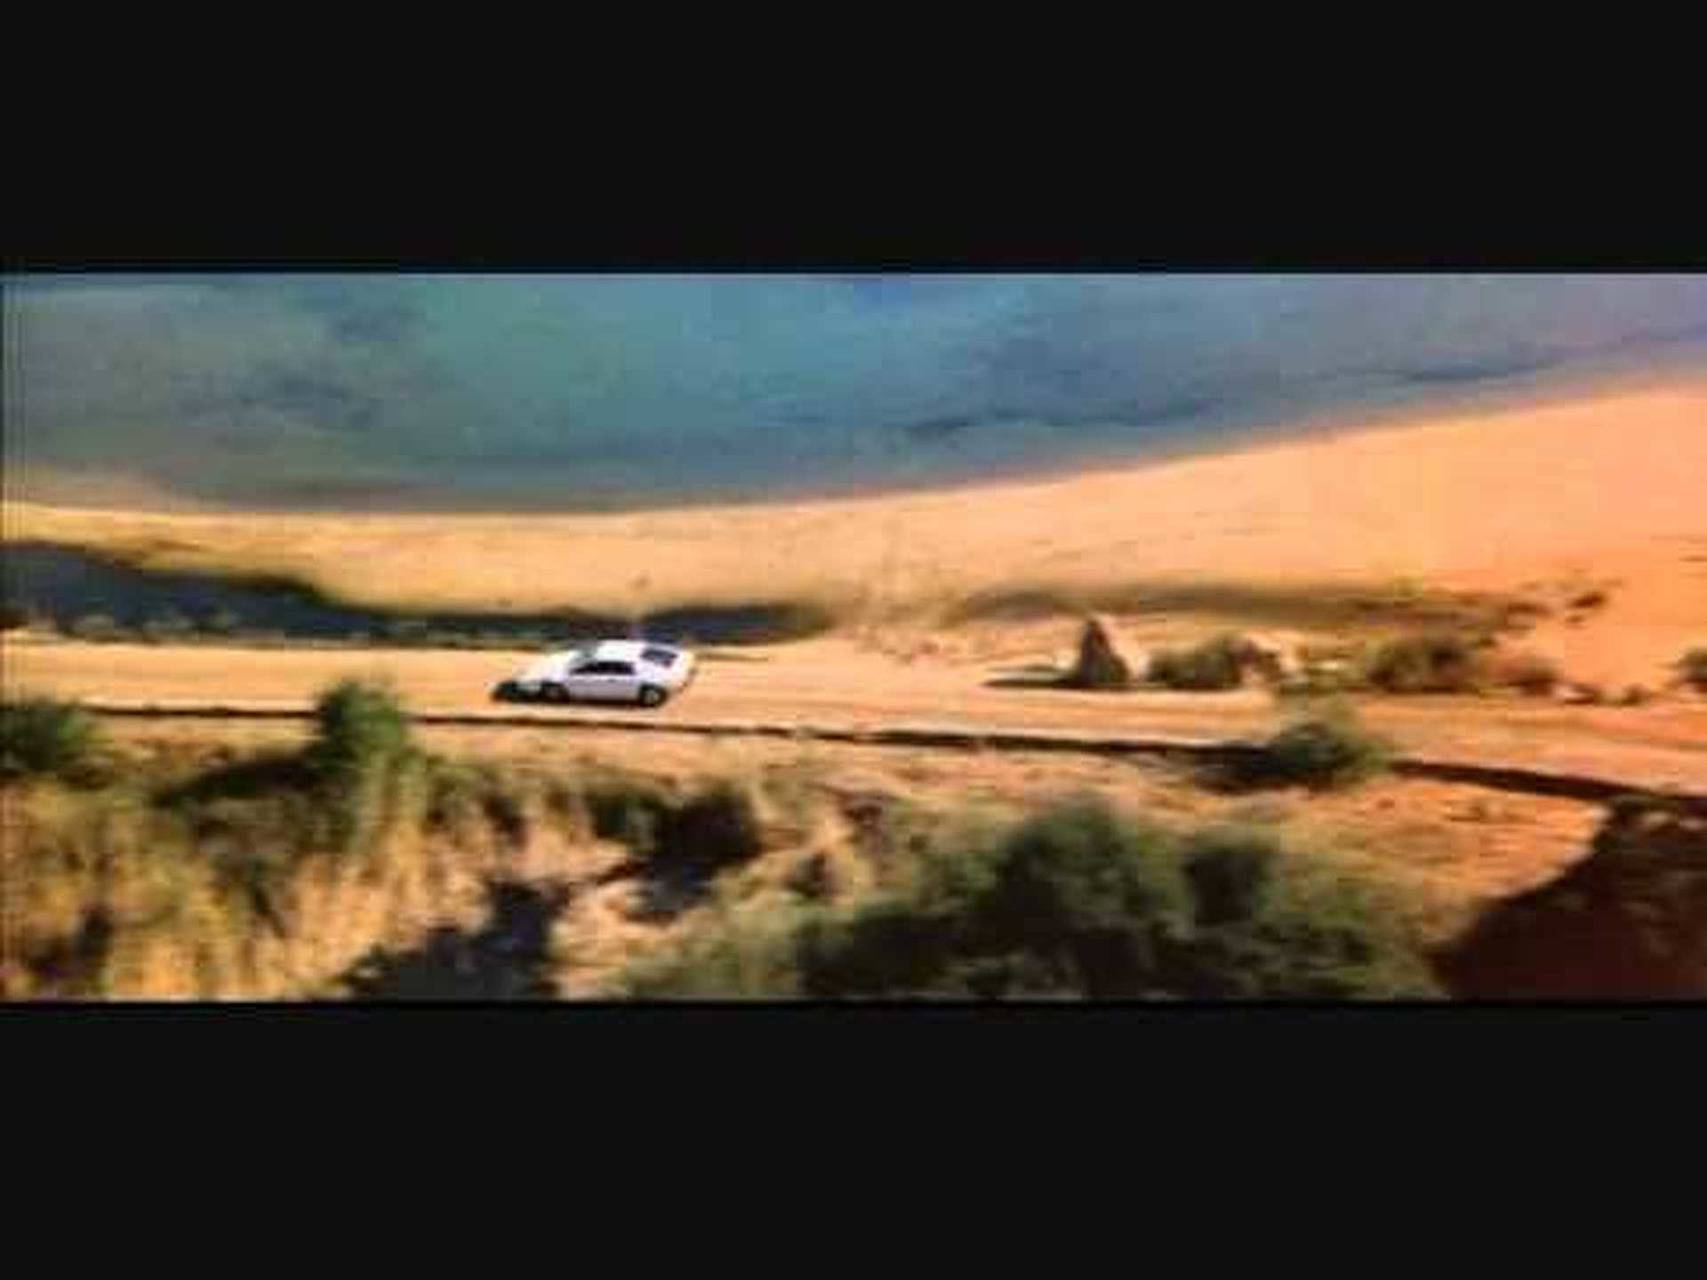 Lotus Esprit S1 - 007 The spy who loved me